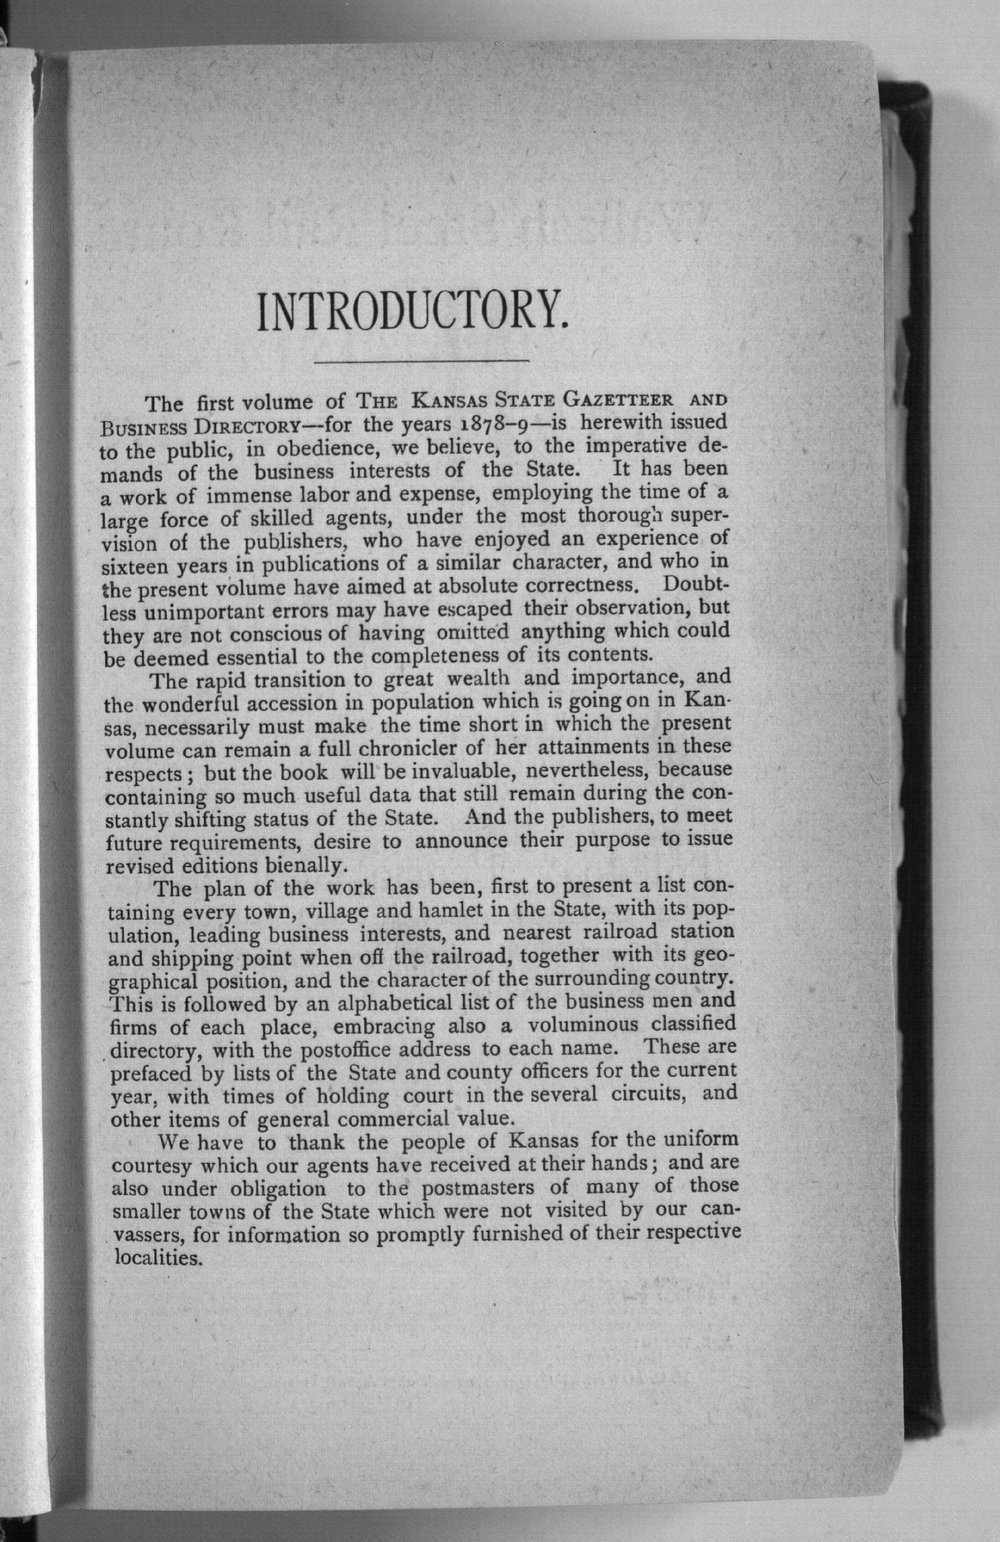 Kansas state gazetteer and business directory - Introductory